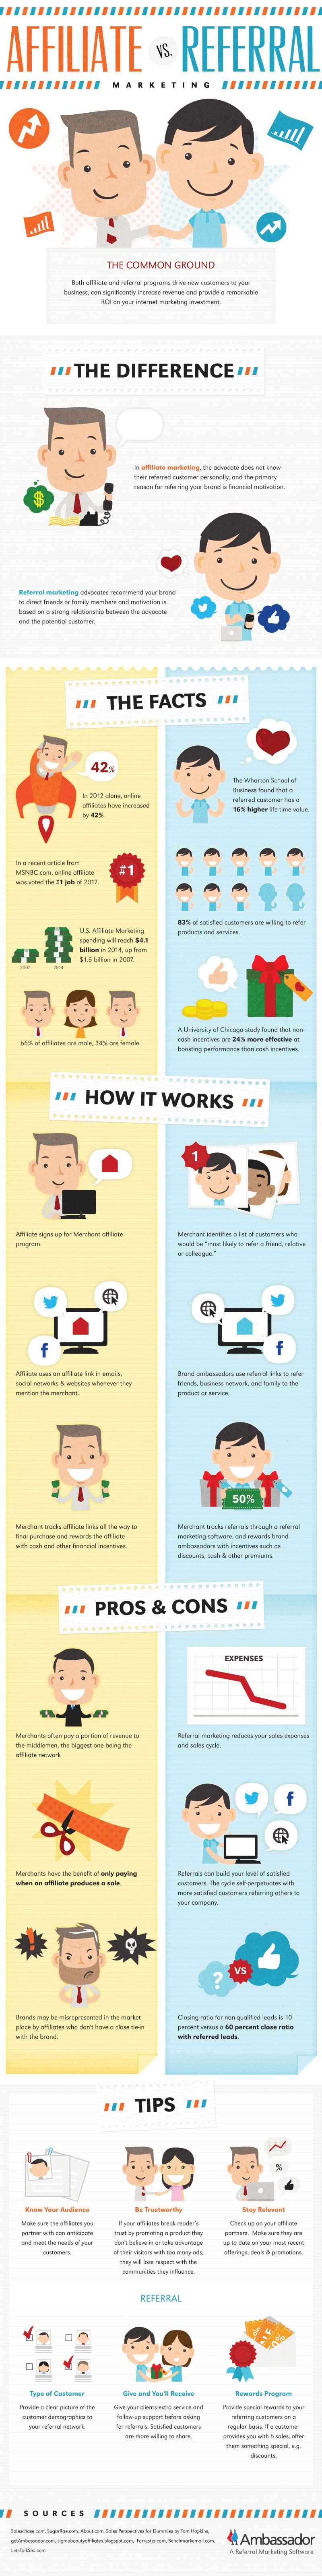 Affiliate or Referral Marketing-Infographic